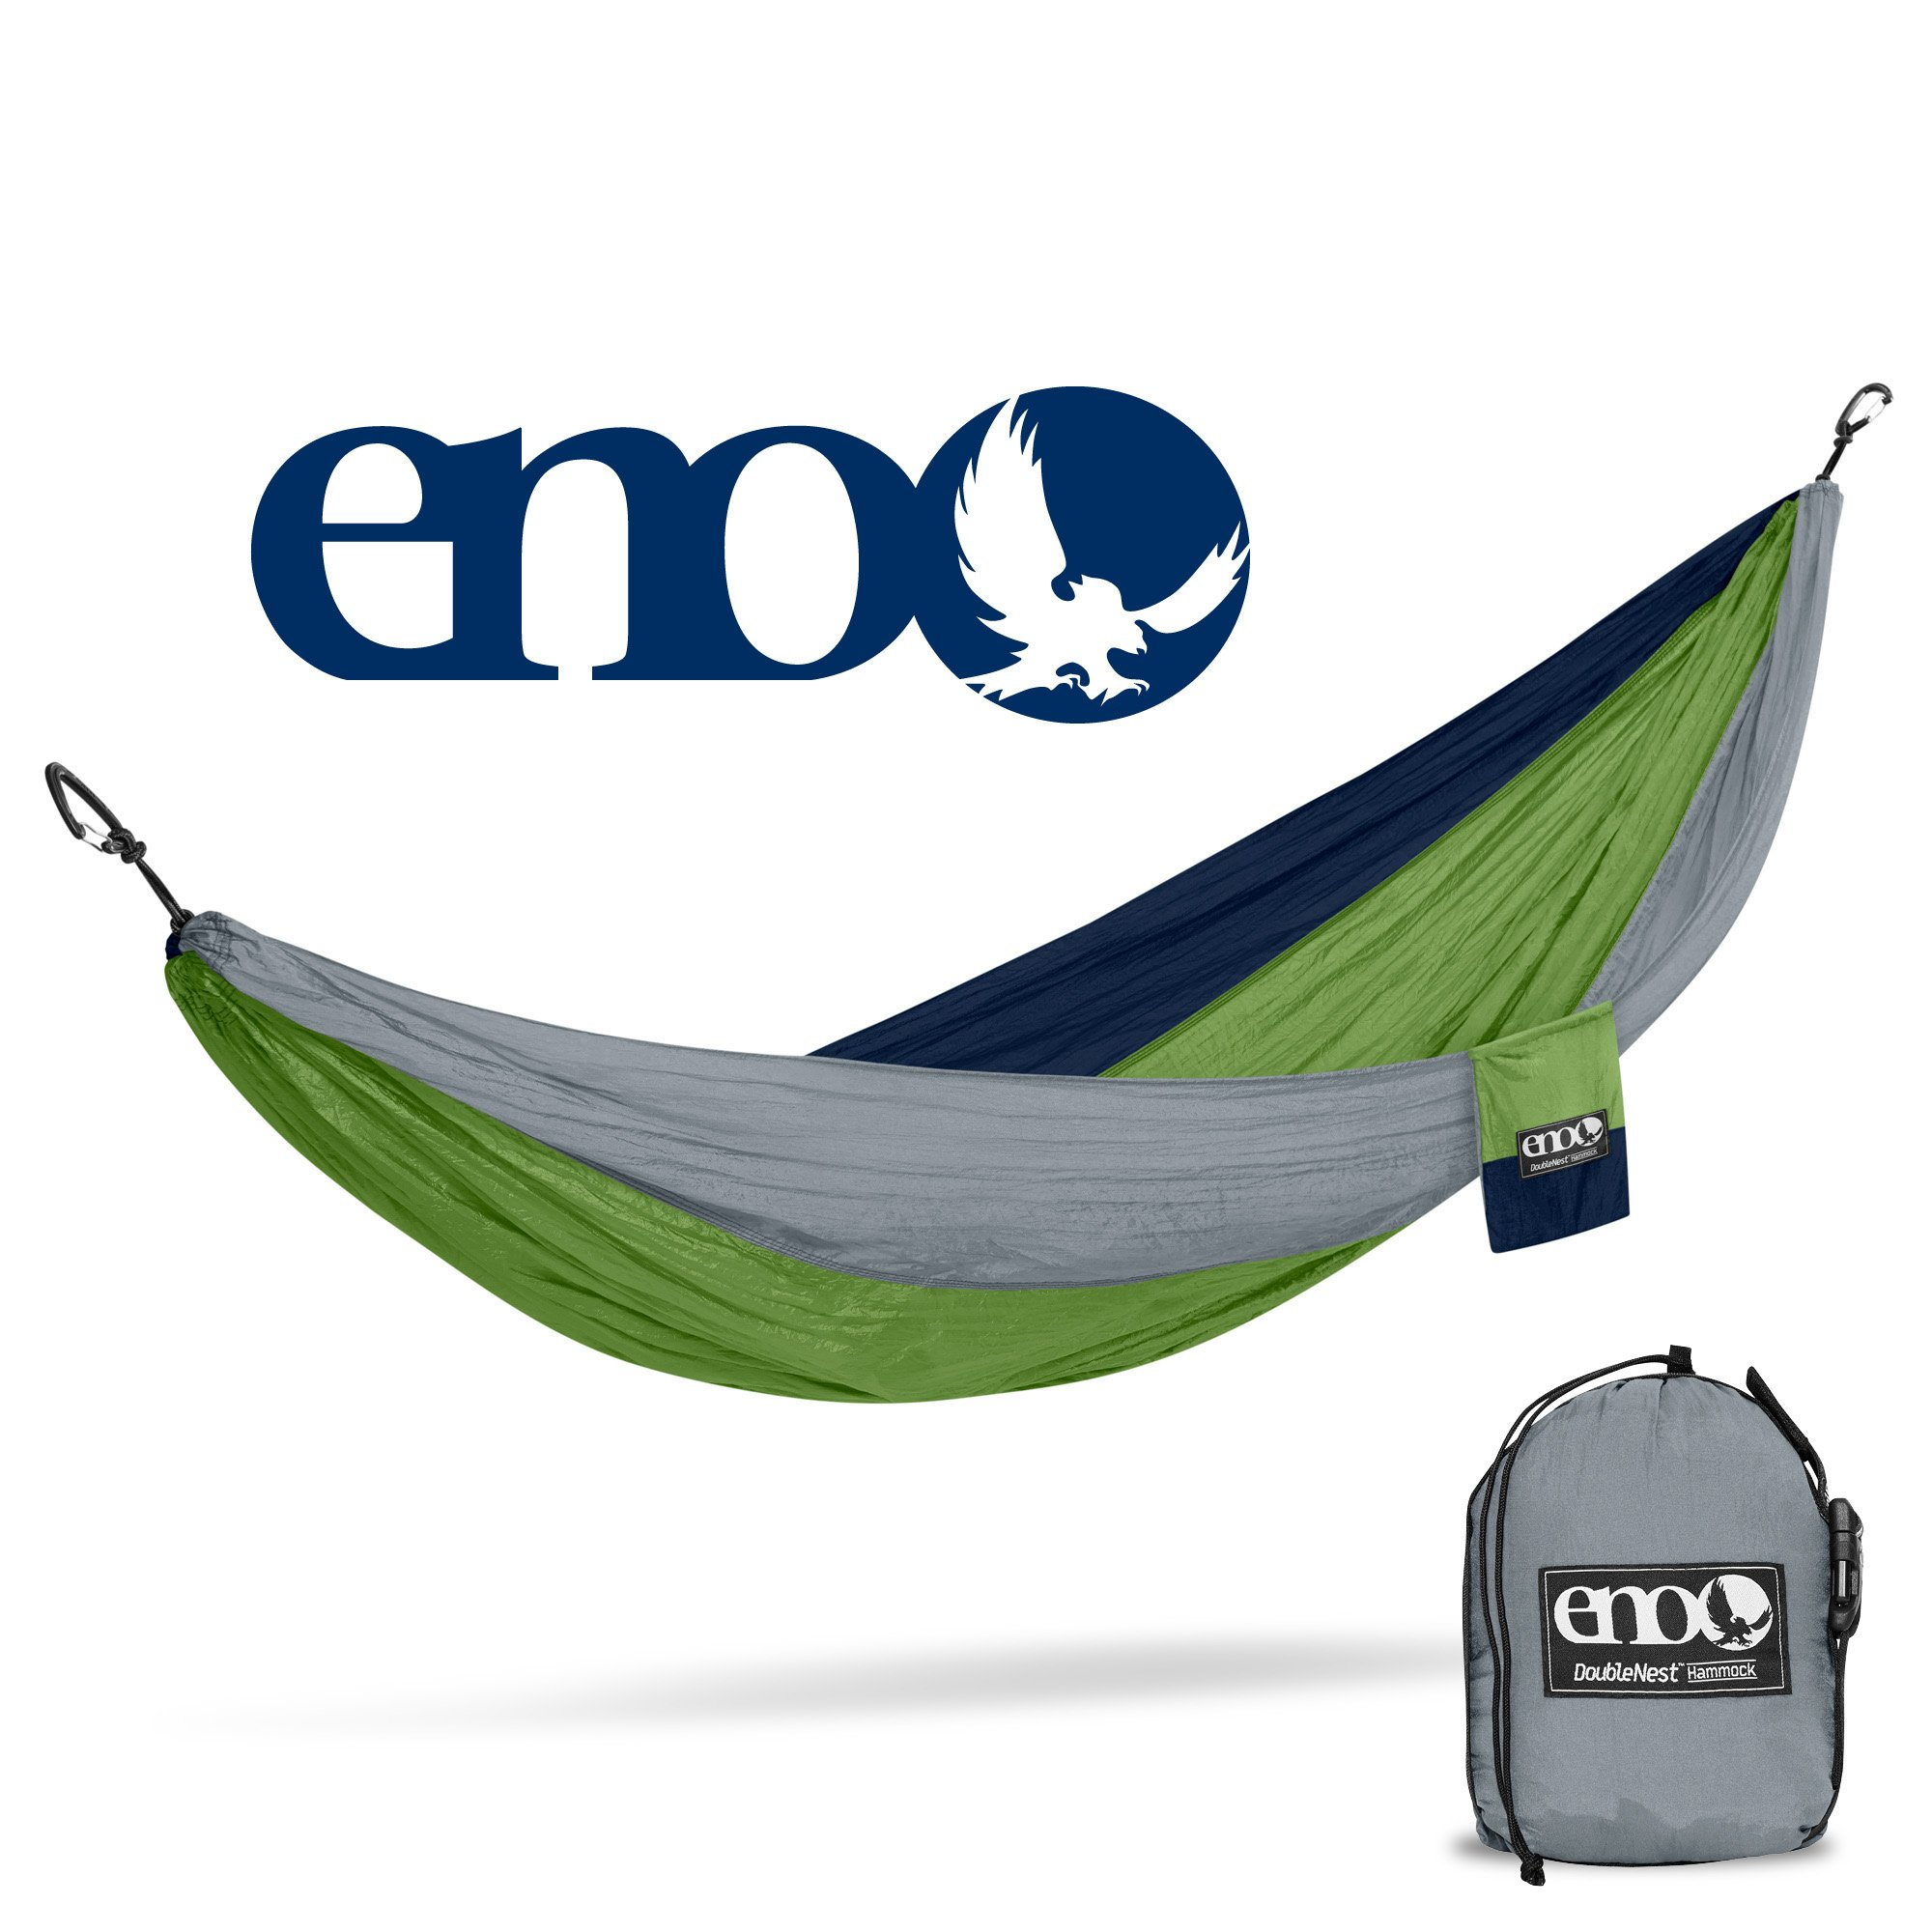 ENO - Eagles Nest Outfitters DoubleNest Hammock, Portable Hammock for Two for Outdoor Camping, Special Edition Colors, Grey/Green/Blue by ENO